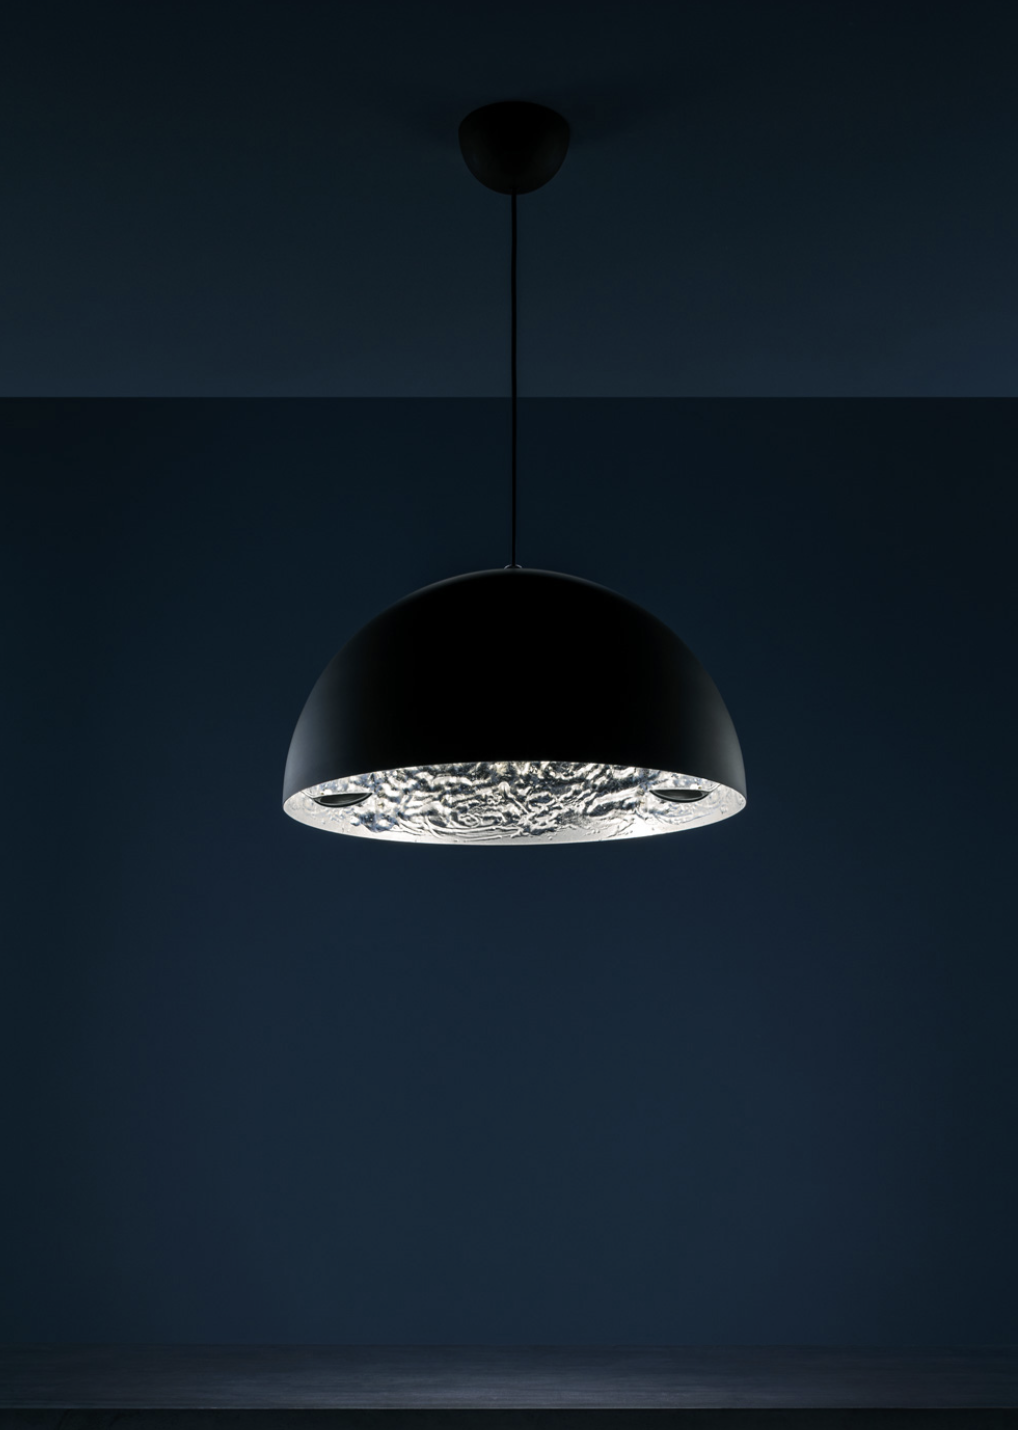 Stchu-Moon 02 Pendant Lamp - Stchu-Moon separates the light source from the lighting object, which takes on its own aesthetic quality as a result. The light is refracted off deliberately irregular surfaces, which multiplies their quantity, making the entire object a glowing light. | Matter of Stuff